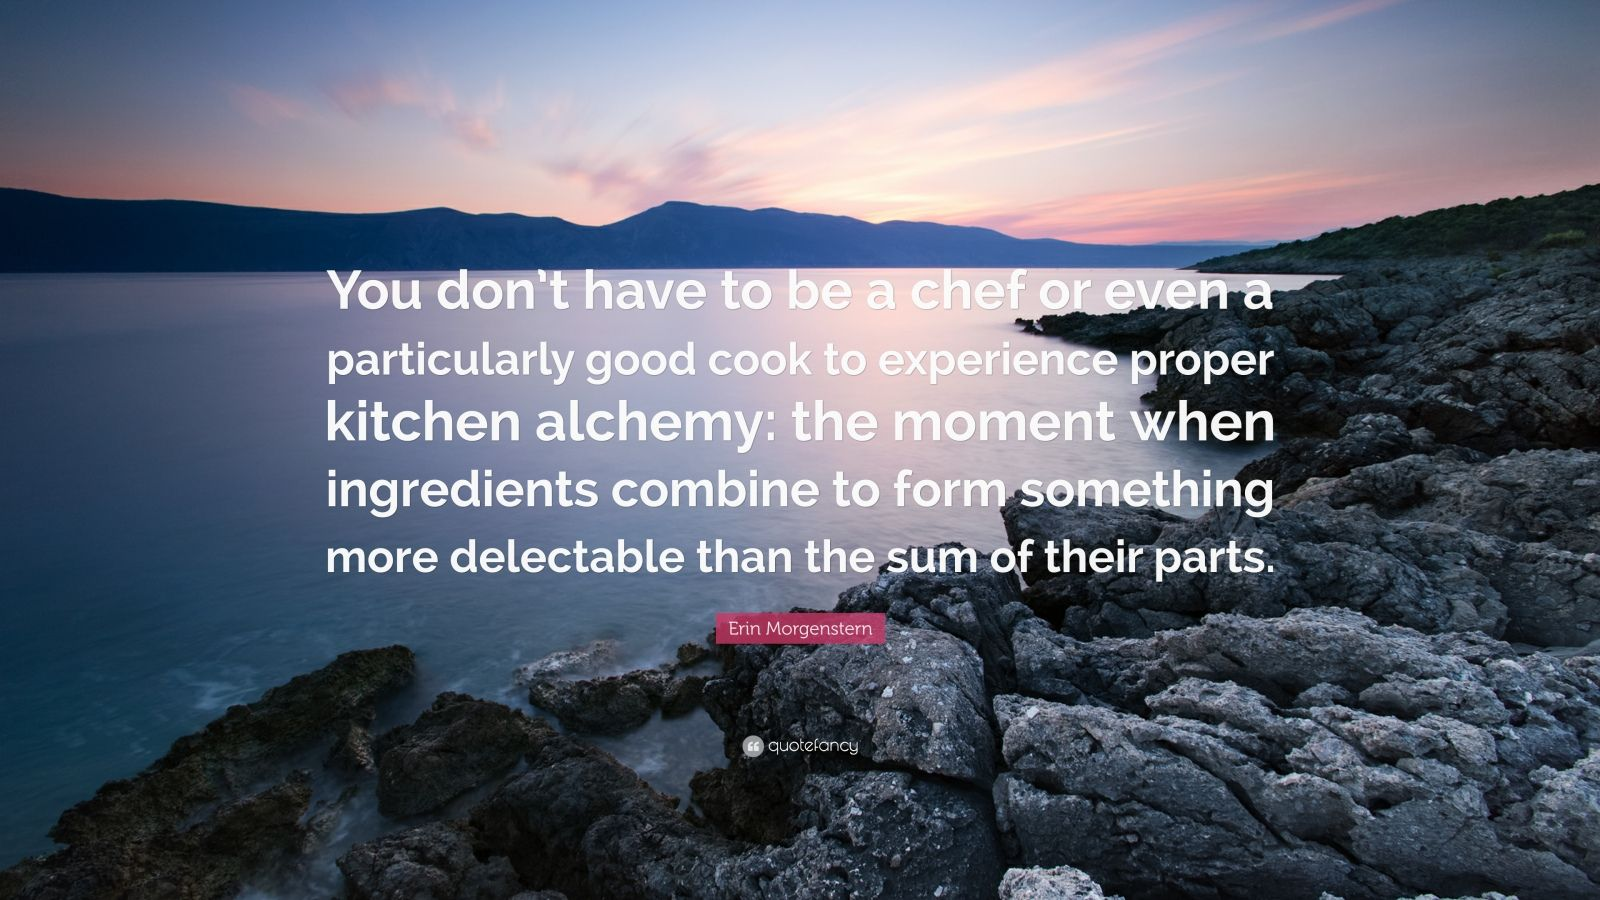 "Erin Morgenstern Quote: ""You don't have to be a chef or even a particularly good cook to experience proper kitchen alchemy: the moment when ingredients combine to form something more delectable than the sum of their parts."""